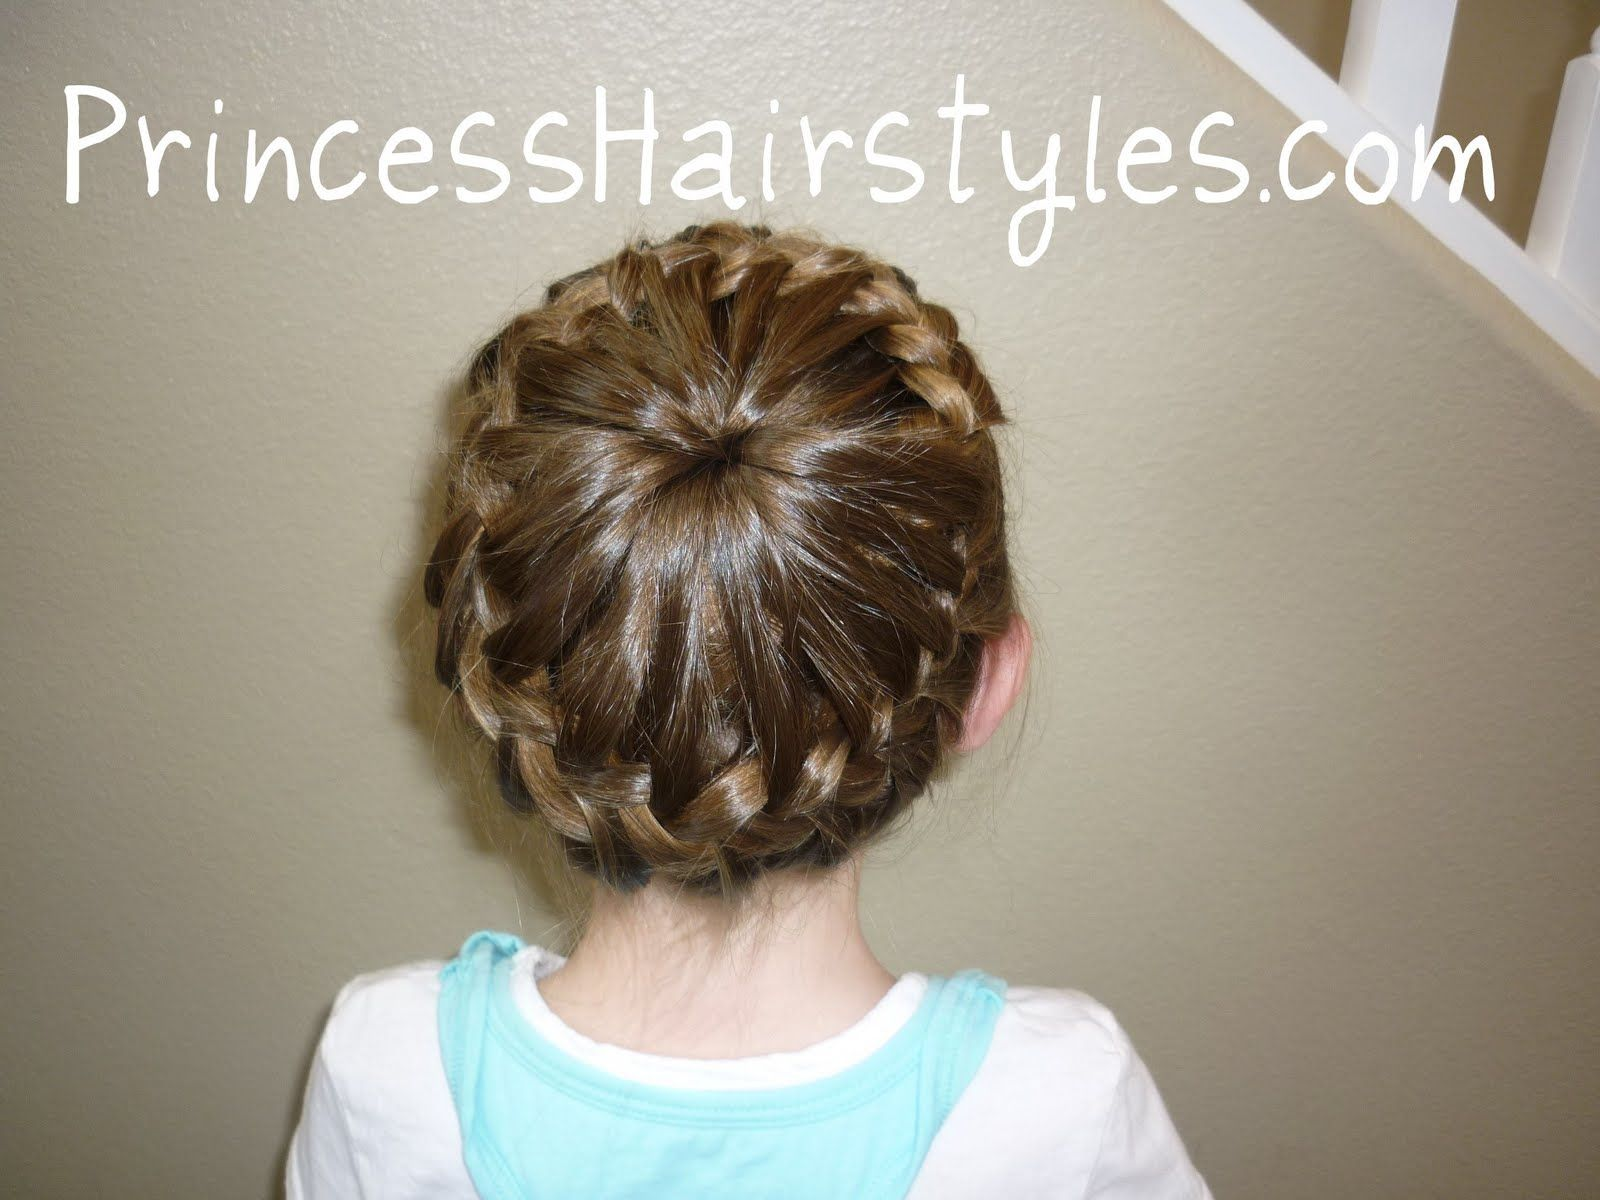 Magnificent 1000 Images About Kids Hair On Pinterest Seashell Braid Heart Short Hairstyles For Black Women Fulllsitofus